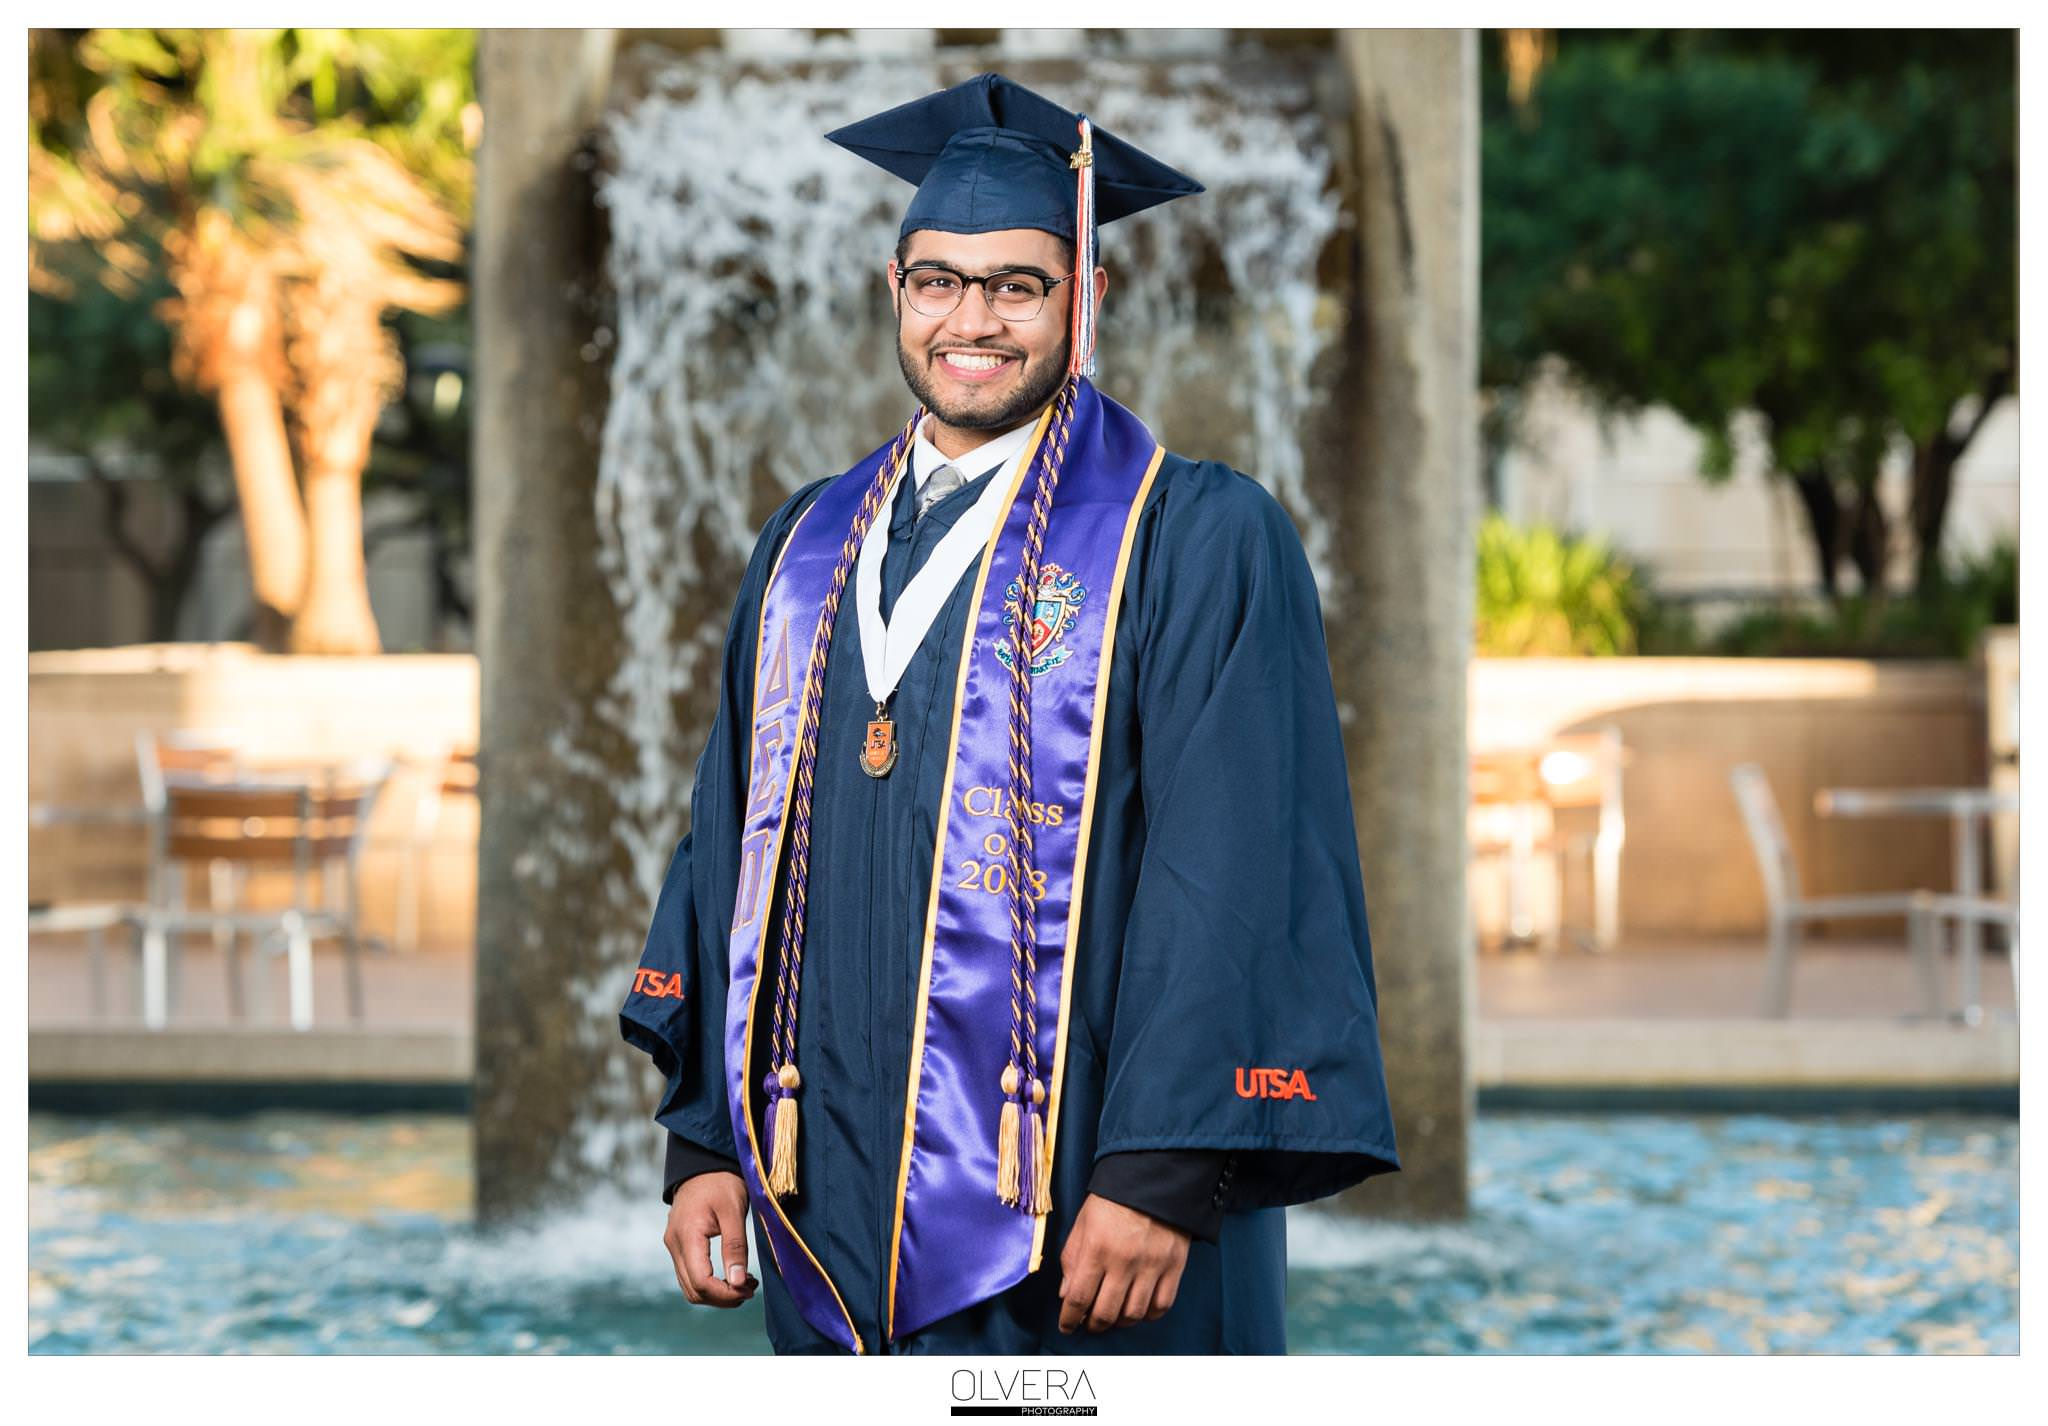 How to Celebrate your College graduation in style | Olvera Photography